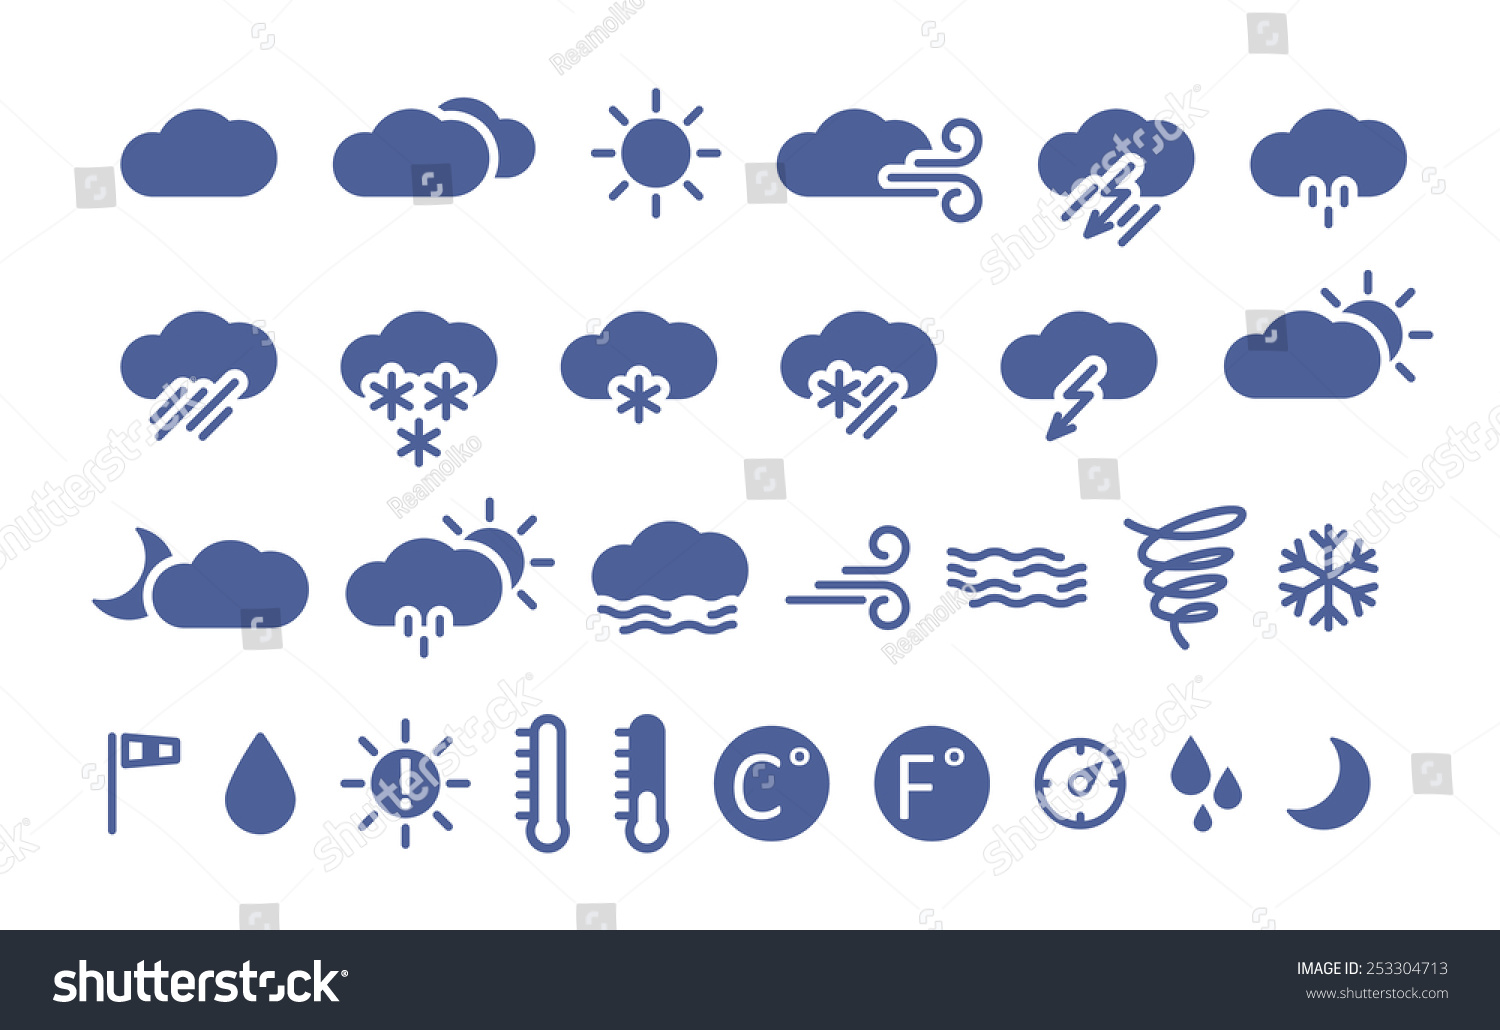 Weather Icons Simple Flat Style Illustration Stock Vector